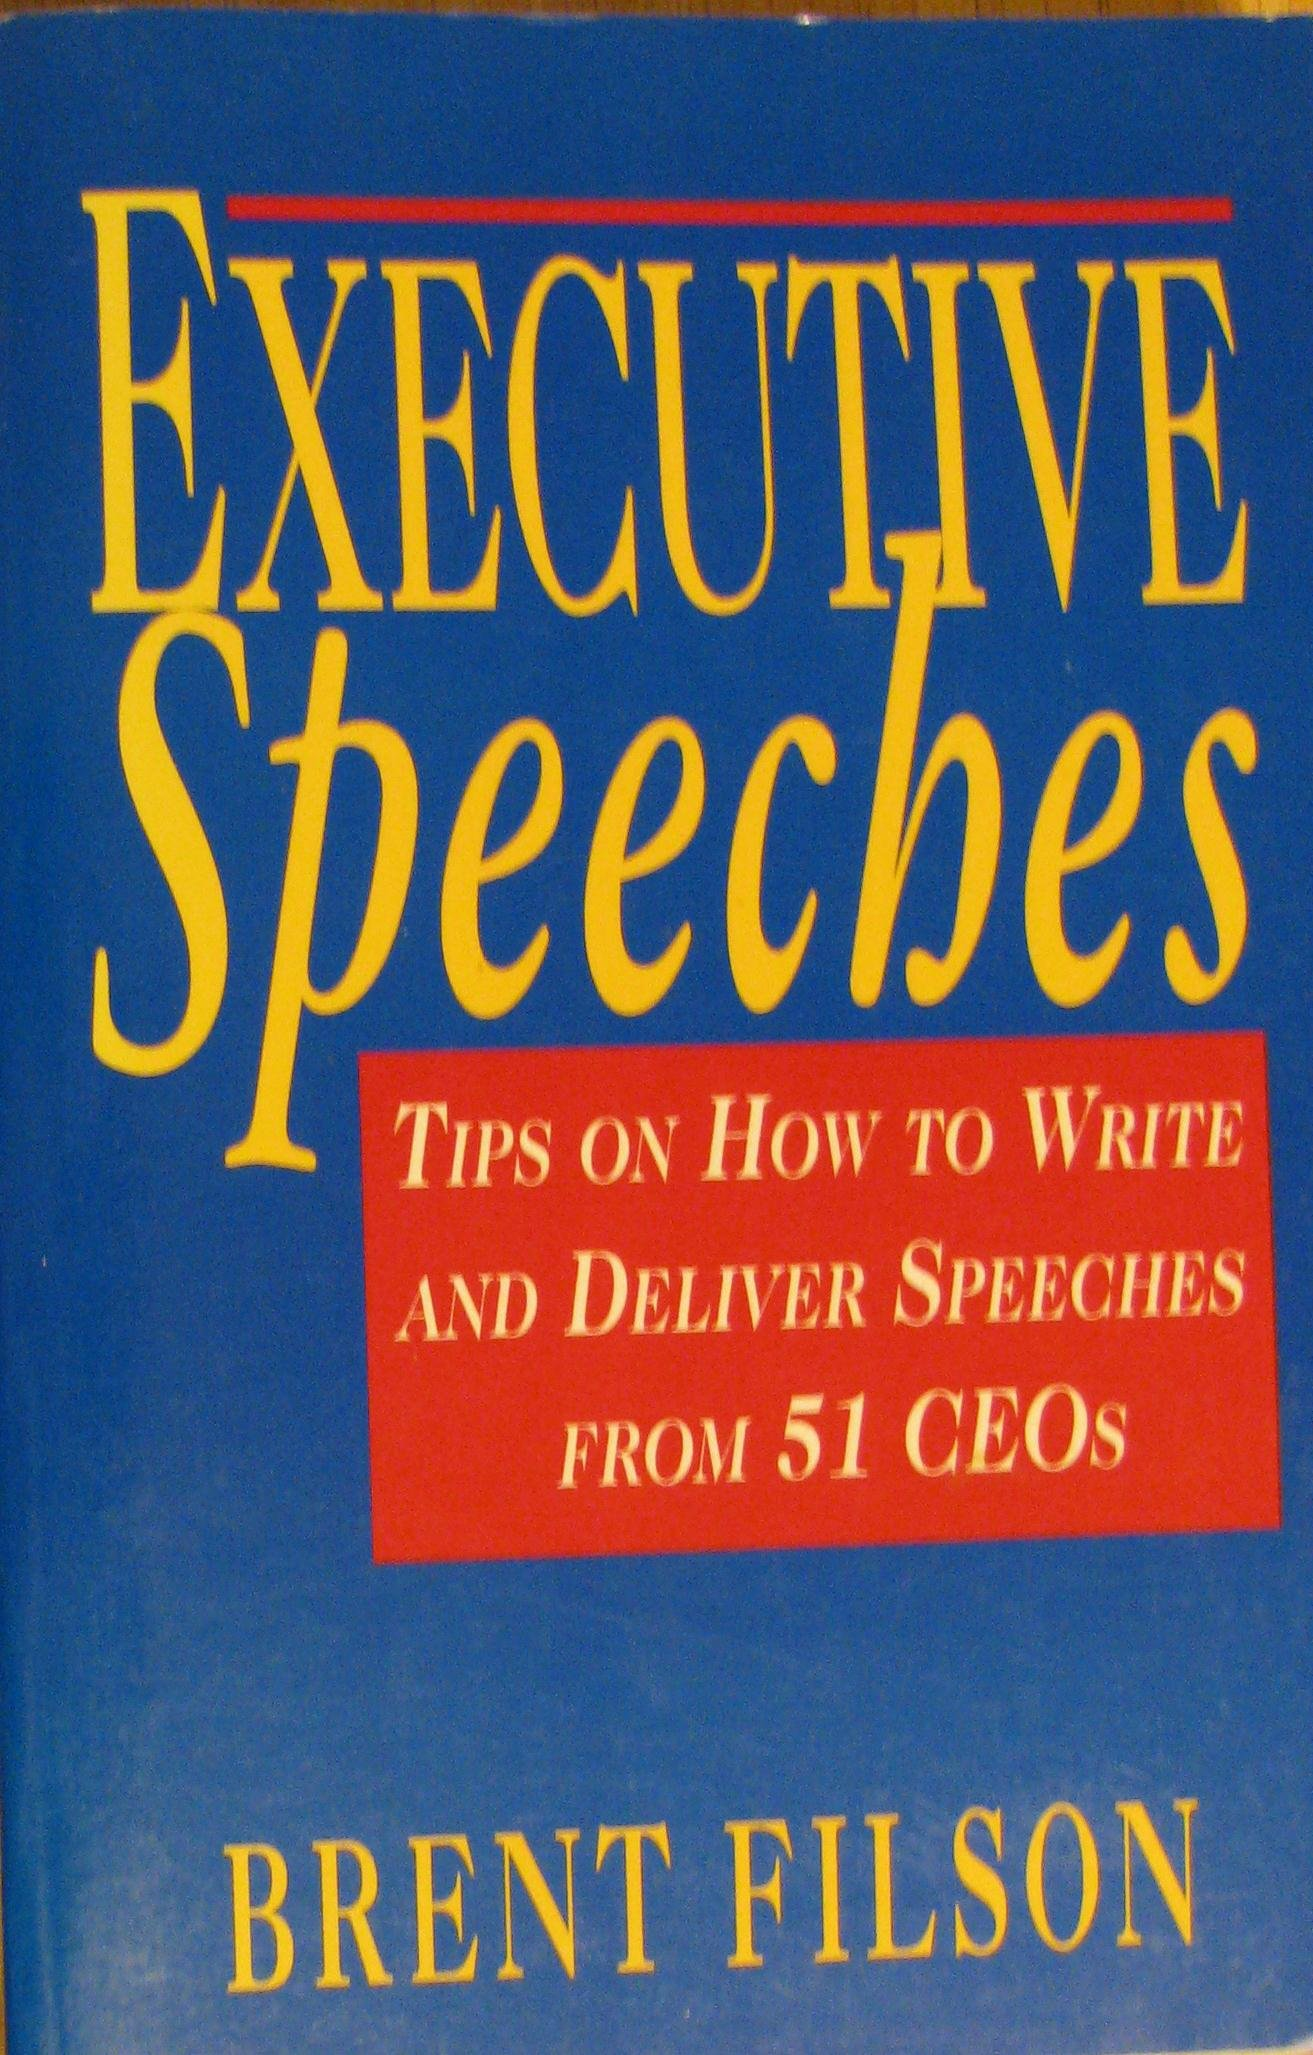 Executive Speeches: Tips on How to Write and Deliver Speeches from 51 Ceos